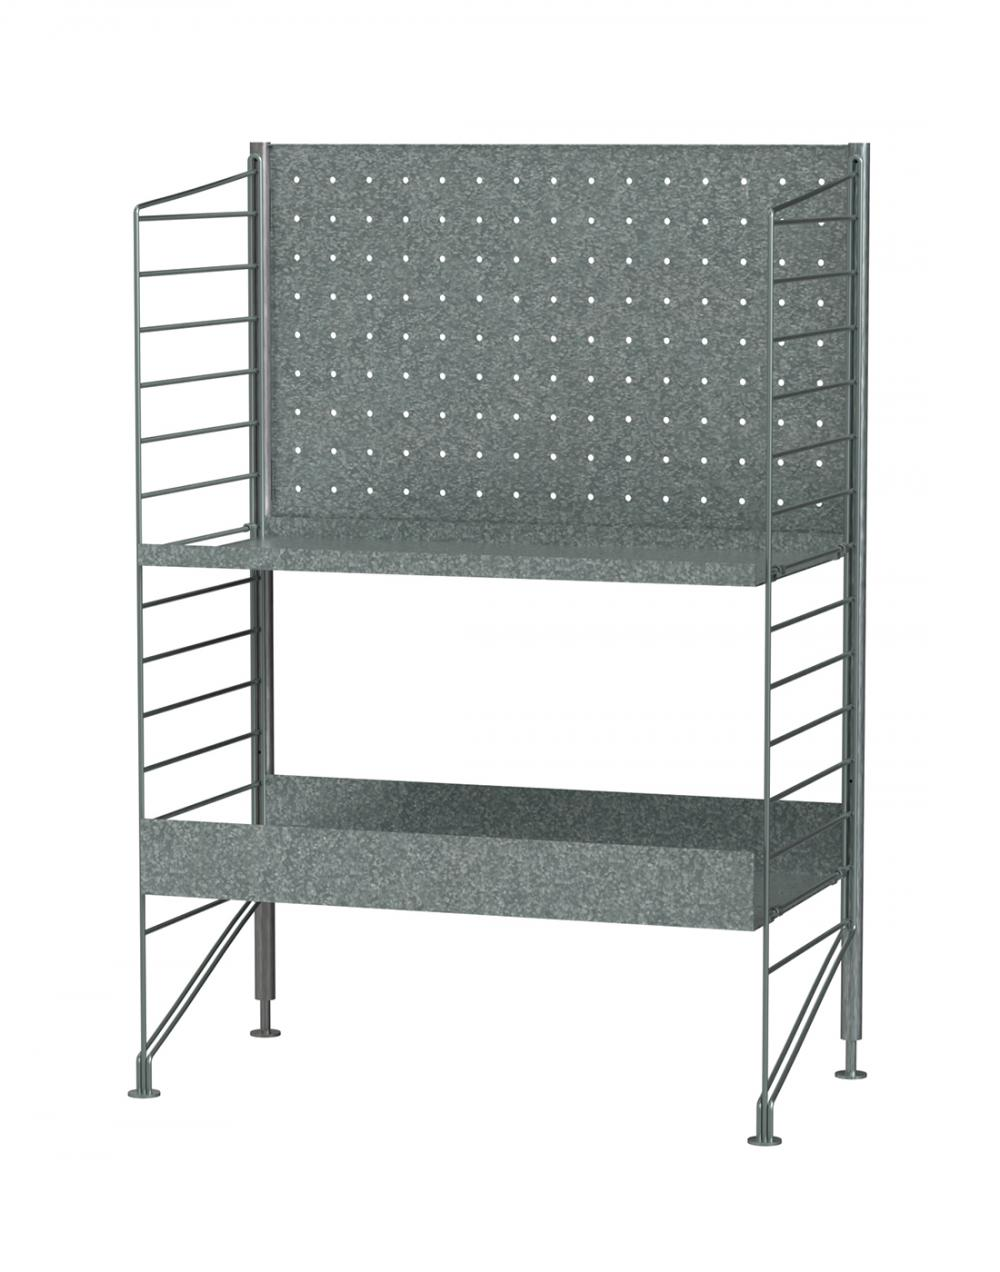 Shelving system - outdoor